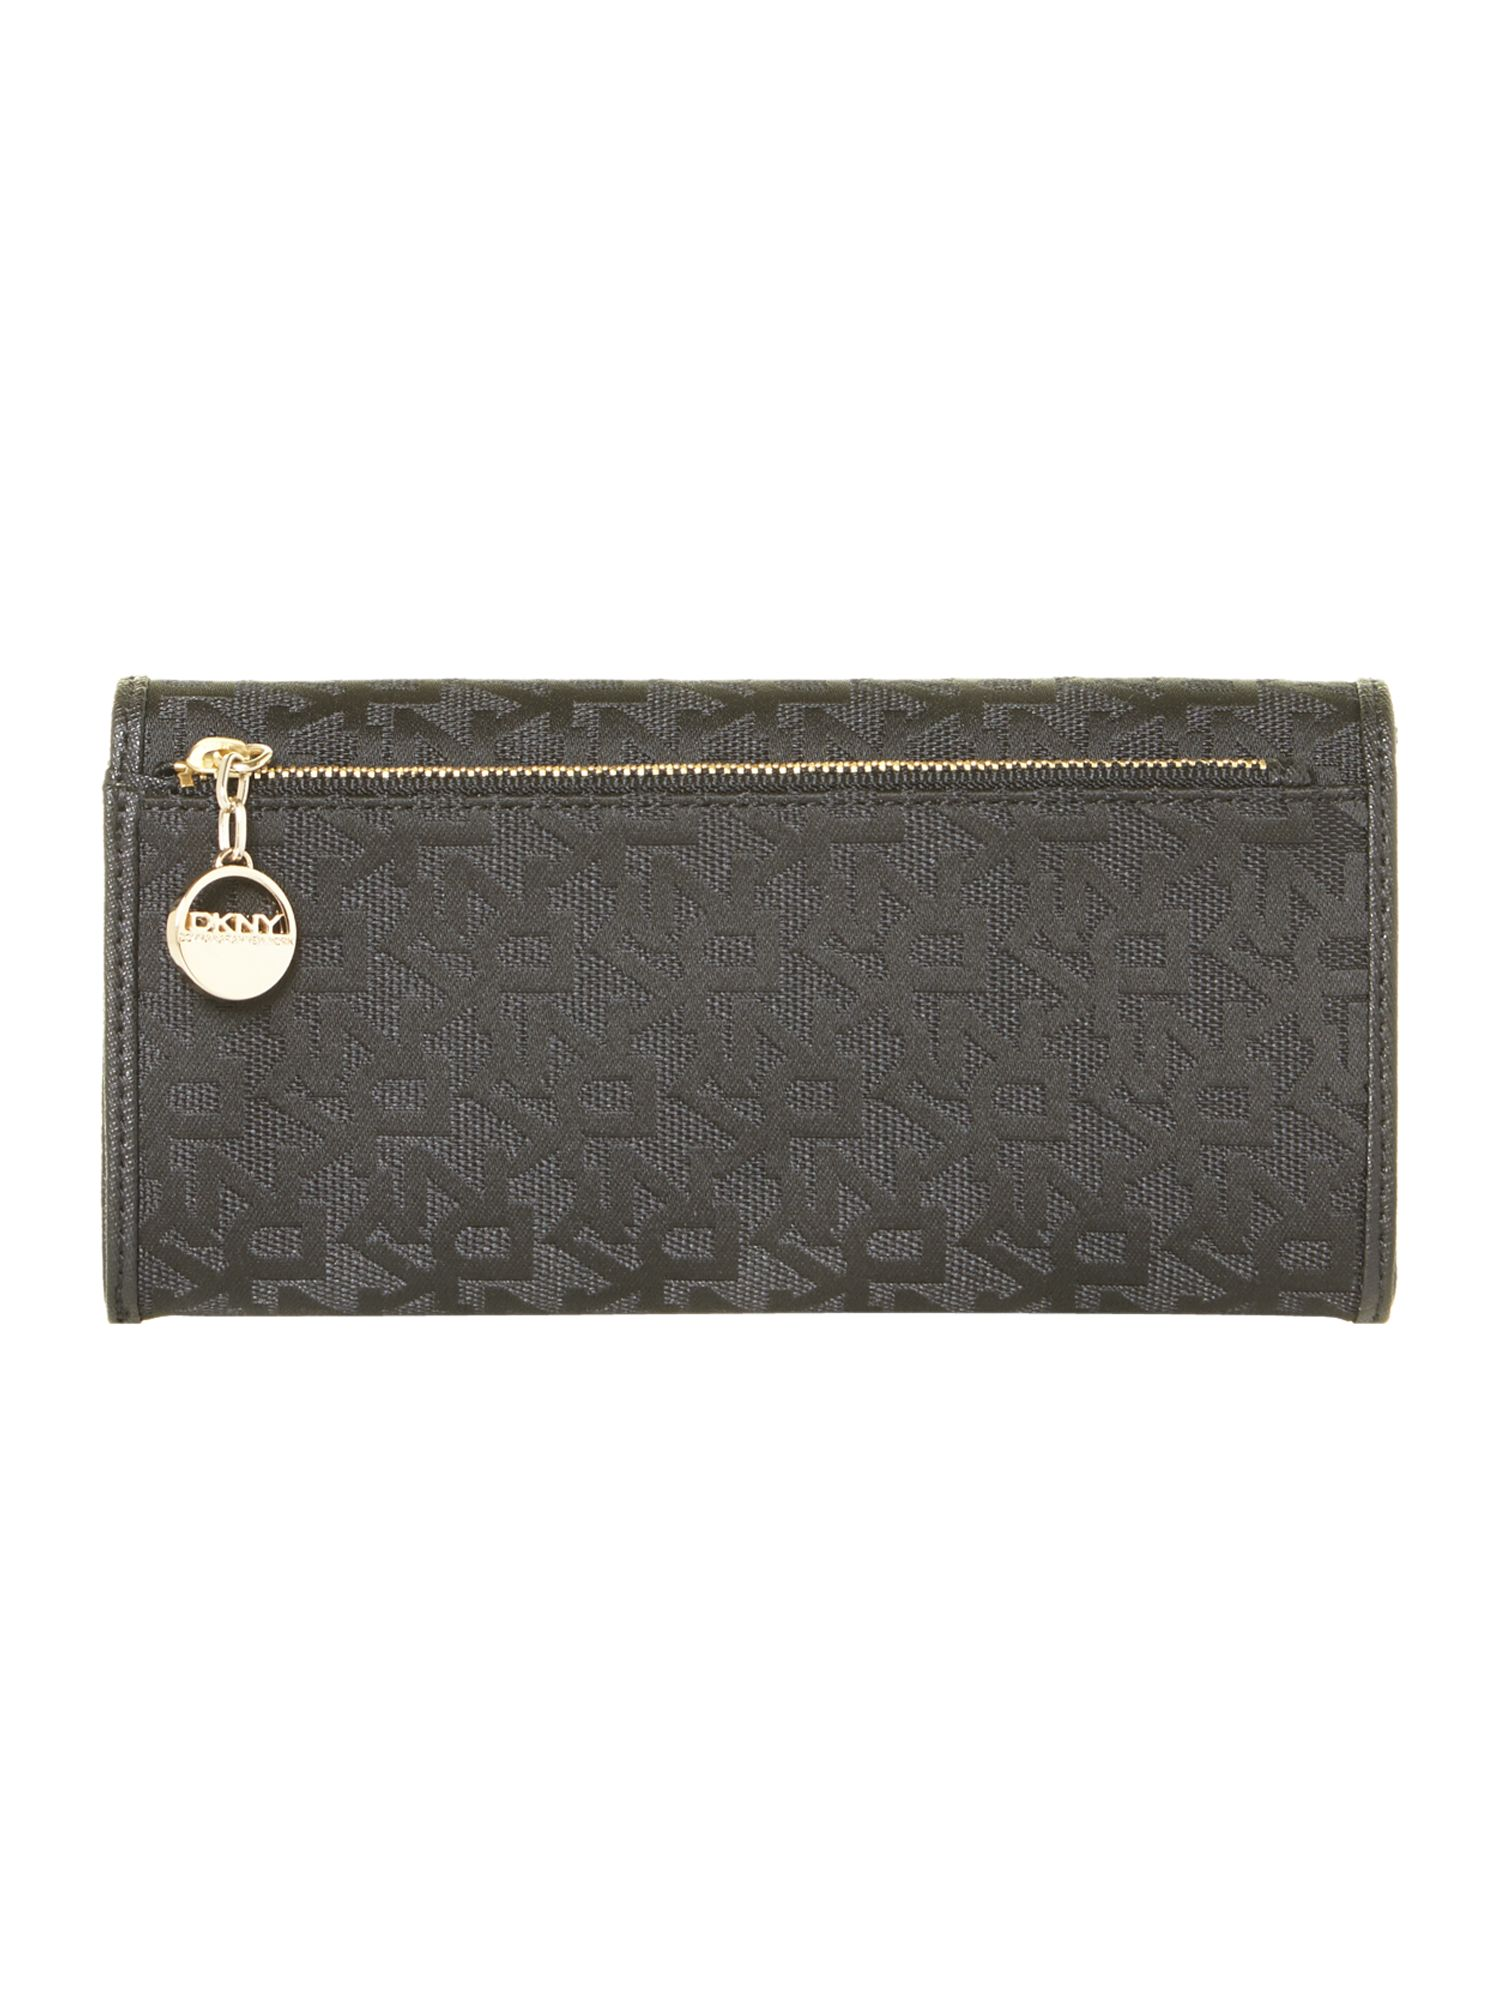 Saffiano black large flapover purse